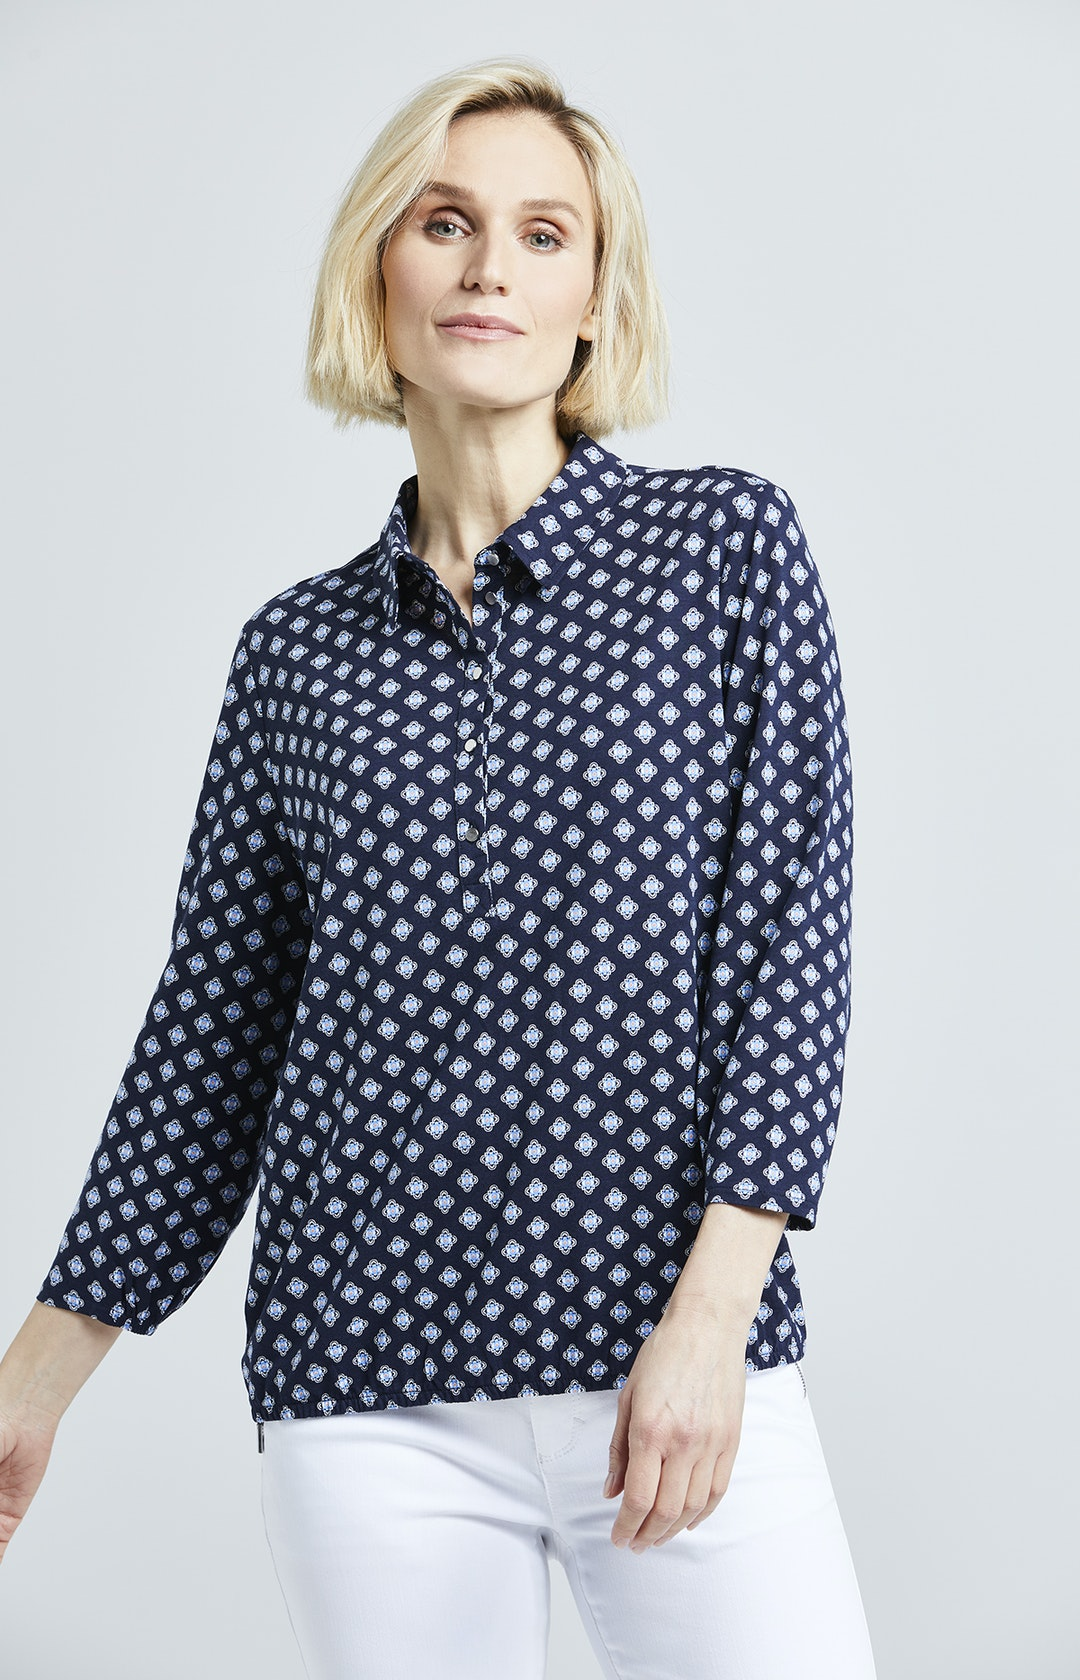 Poloshirt mit Allover-Muster in Blau